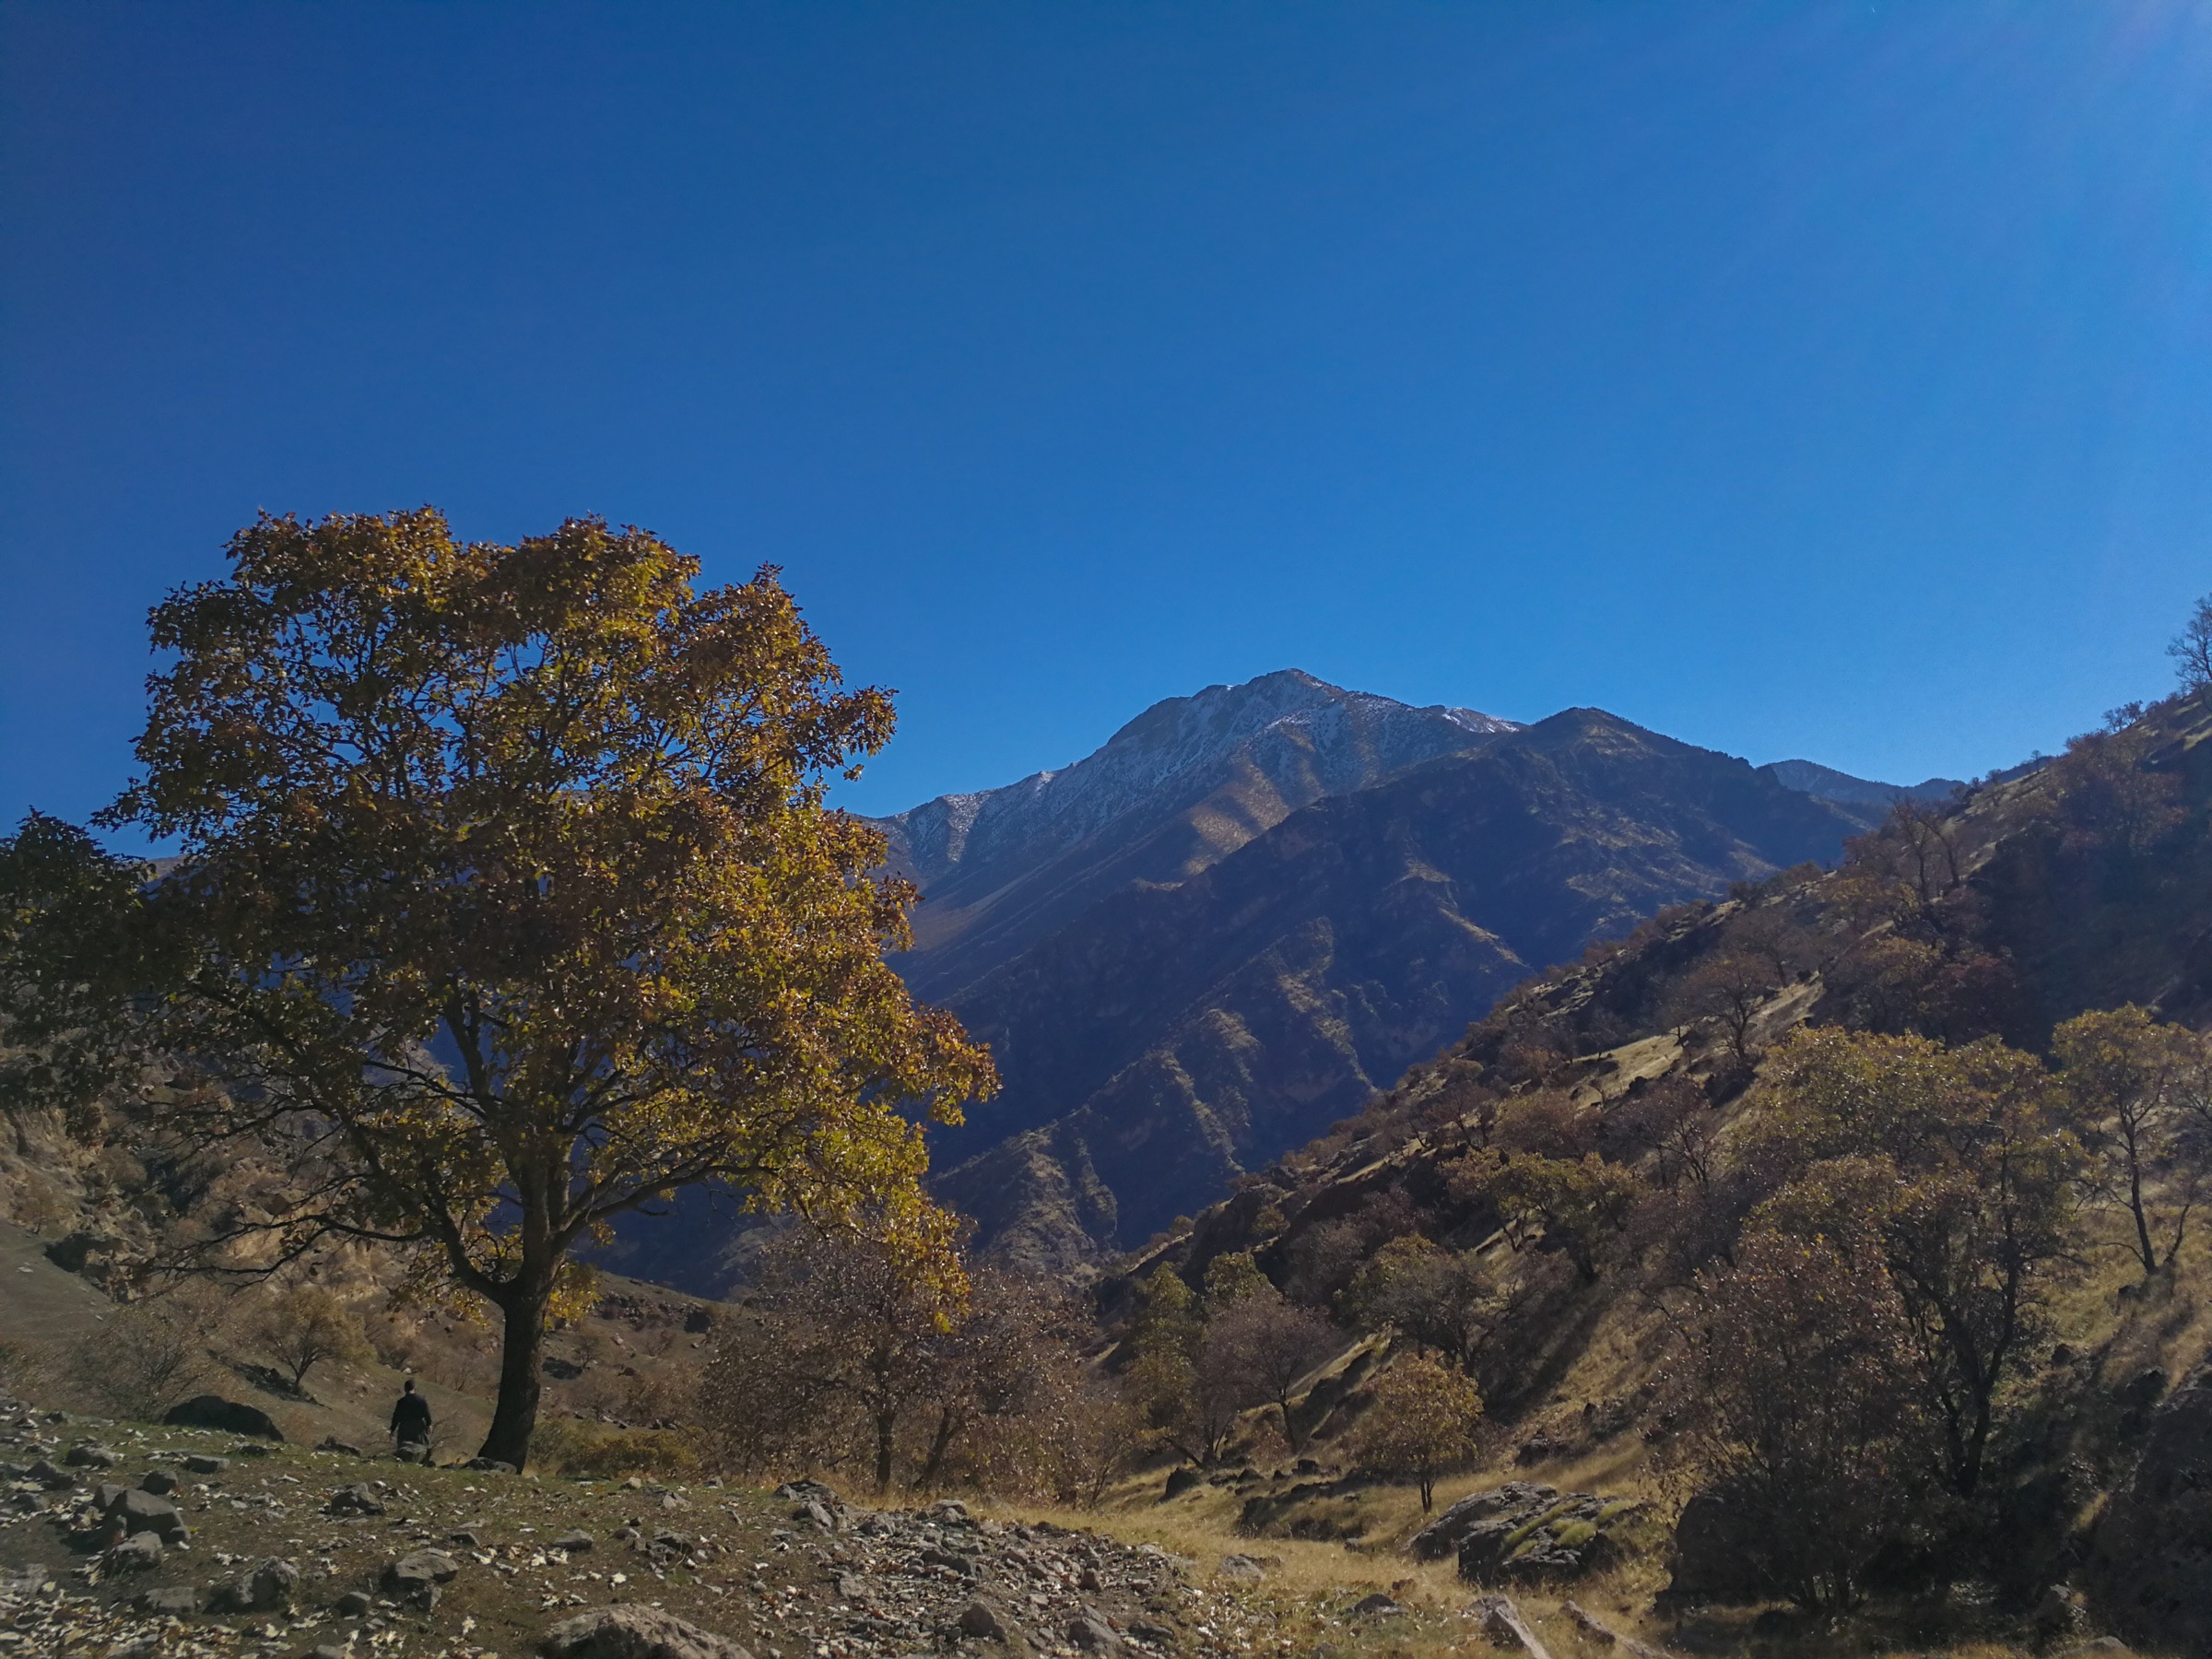 A lone oak tree stands amidst the unrelenting landscape of the Kurdish mountains of northern Iraq. Photograph by Korsh Ararat